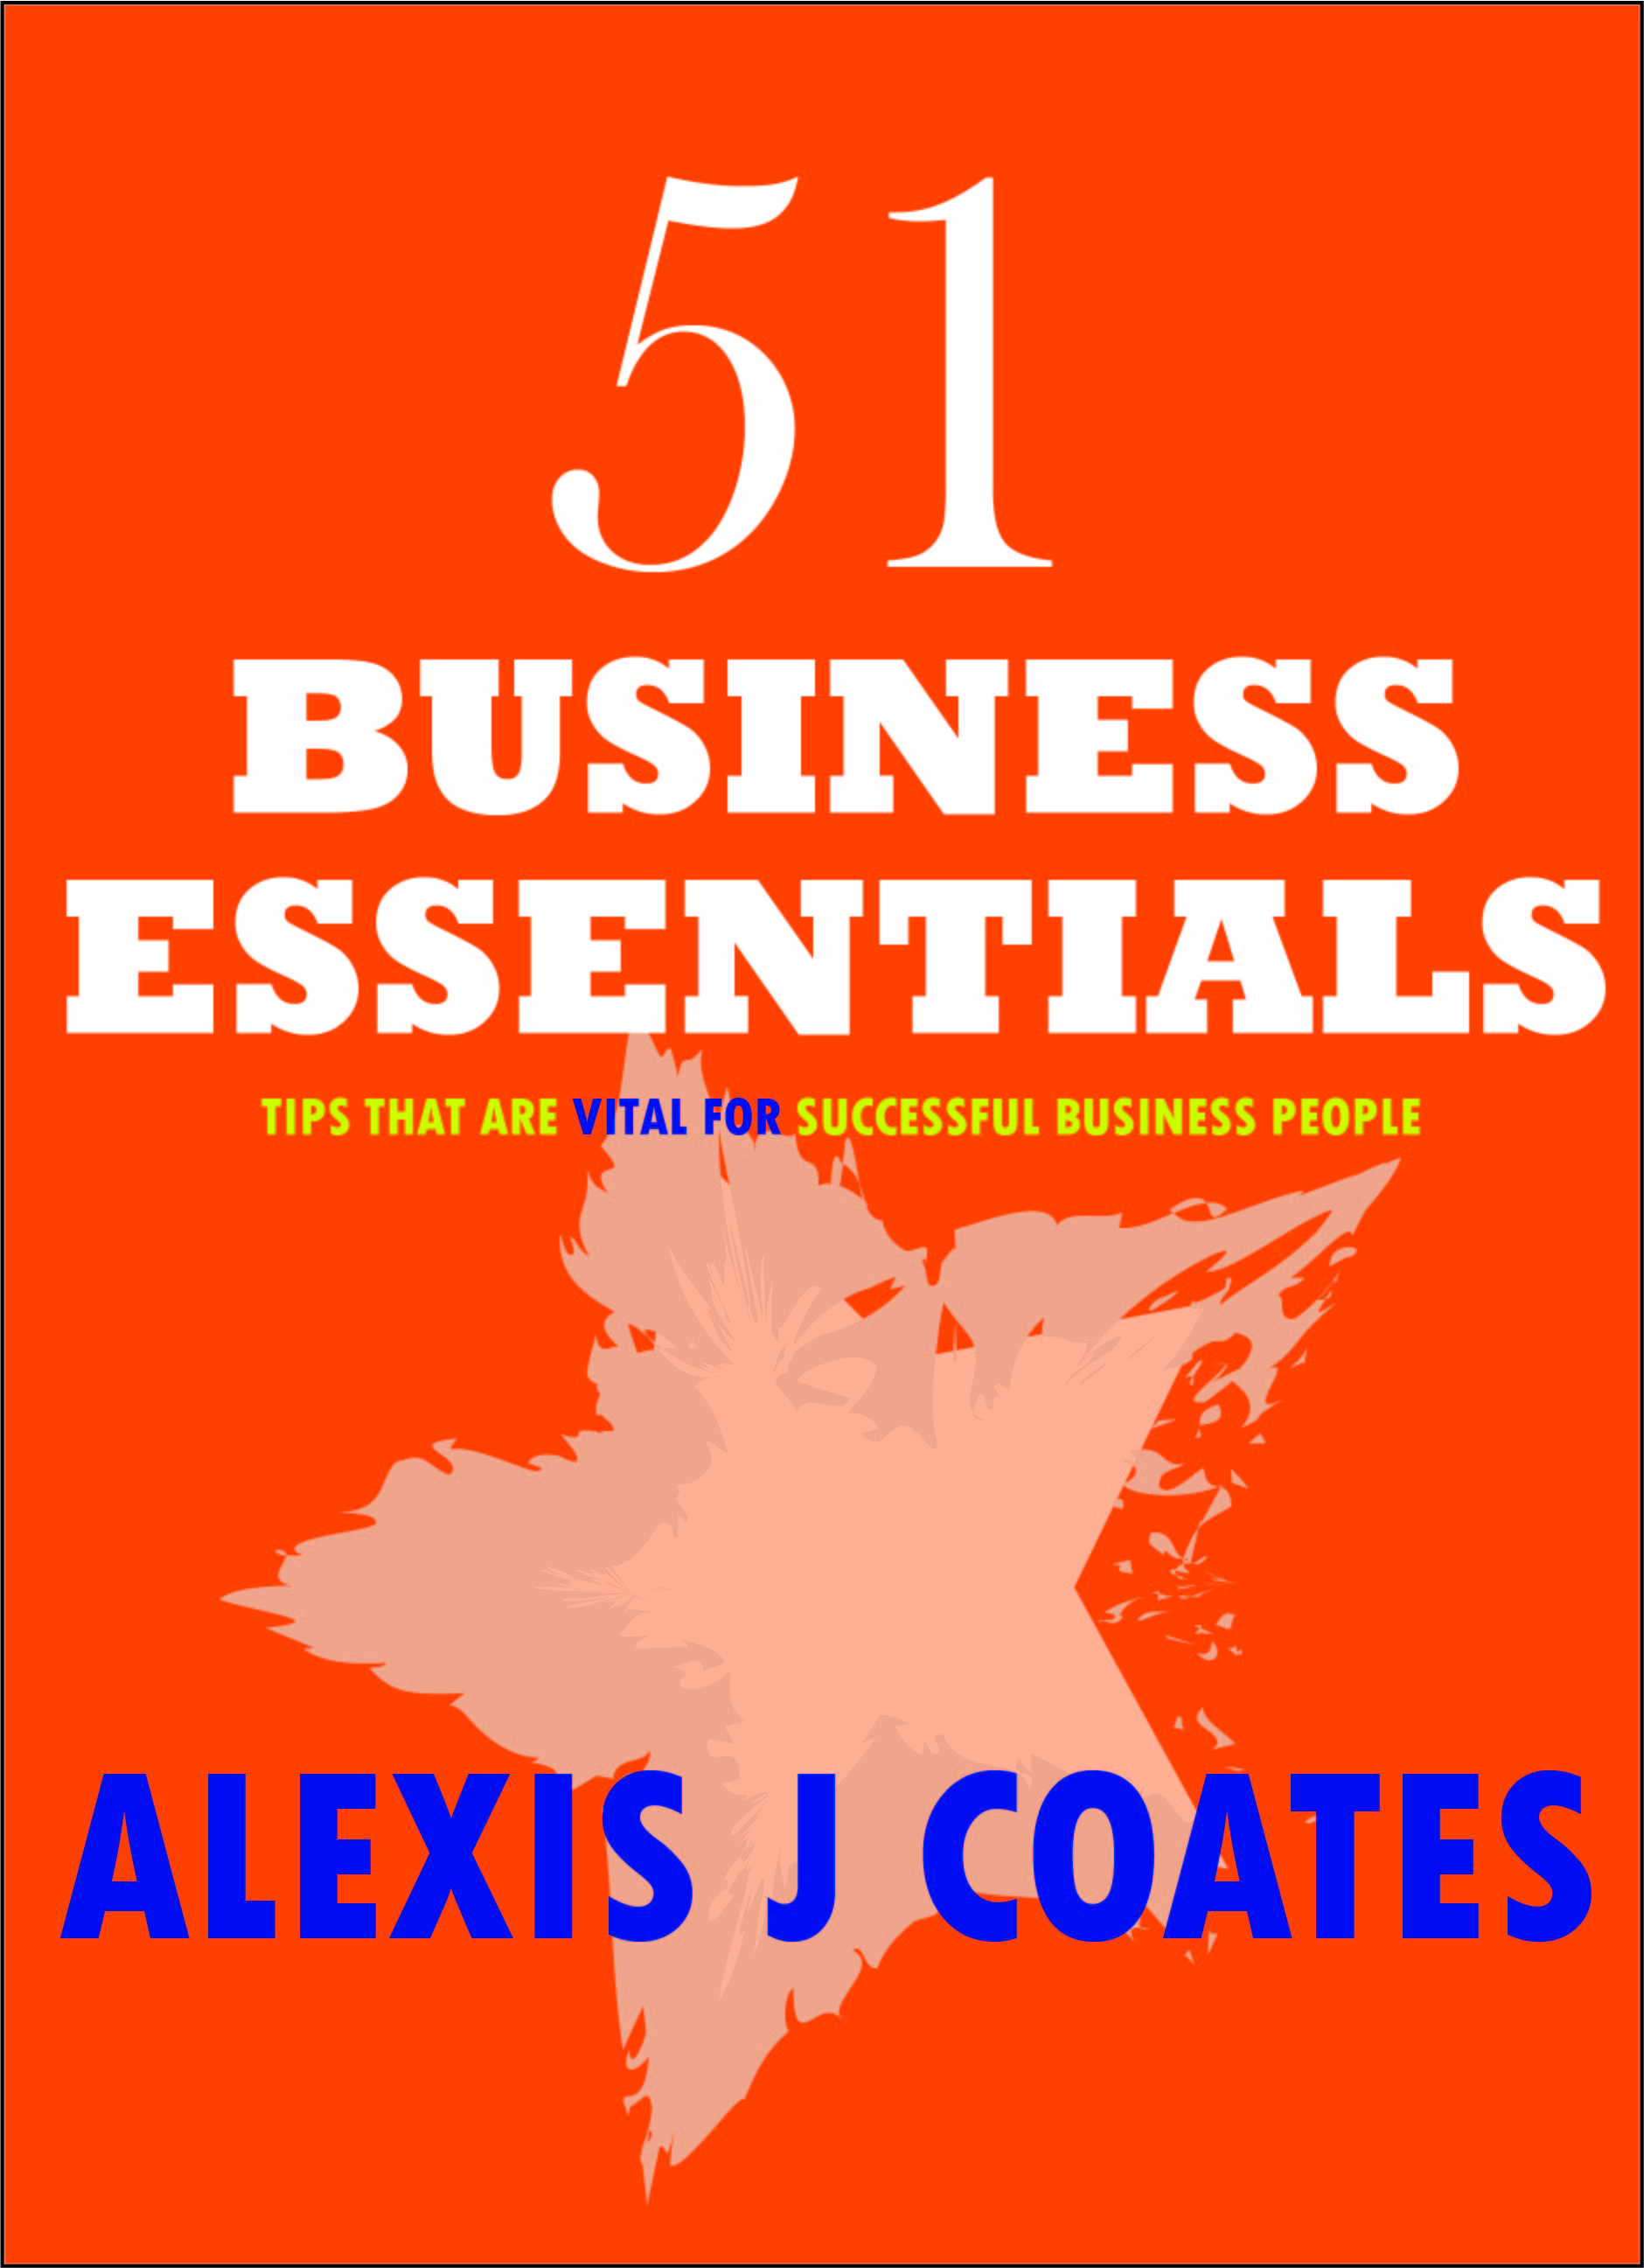 51 BUSINESS ESSENTIALS COVER